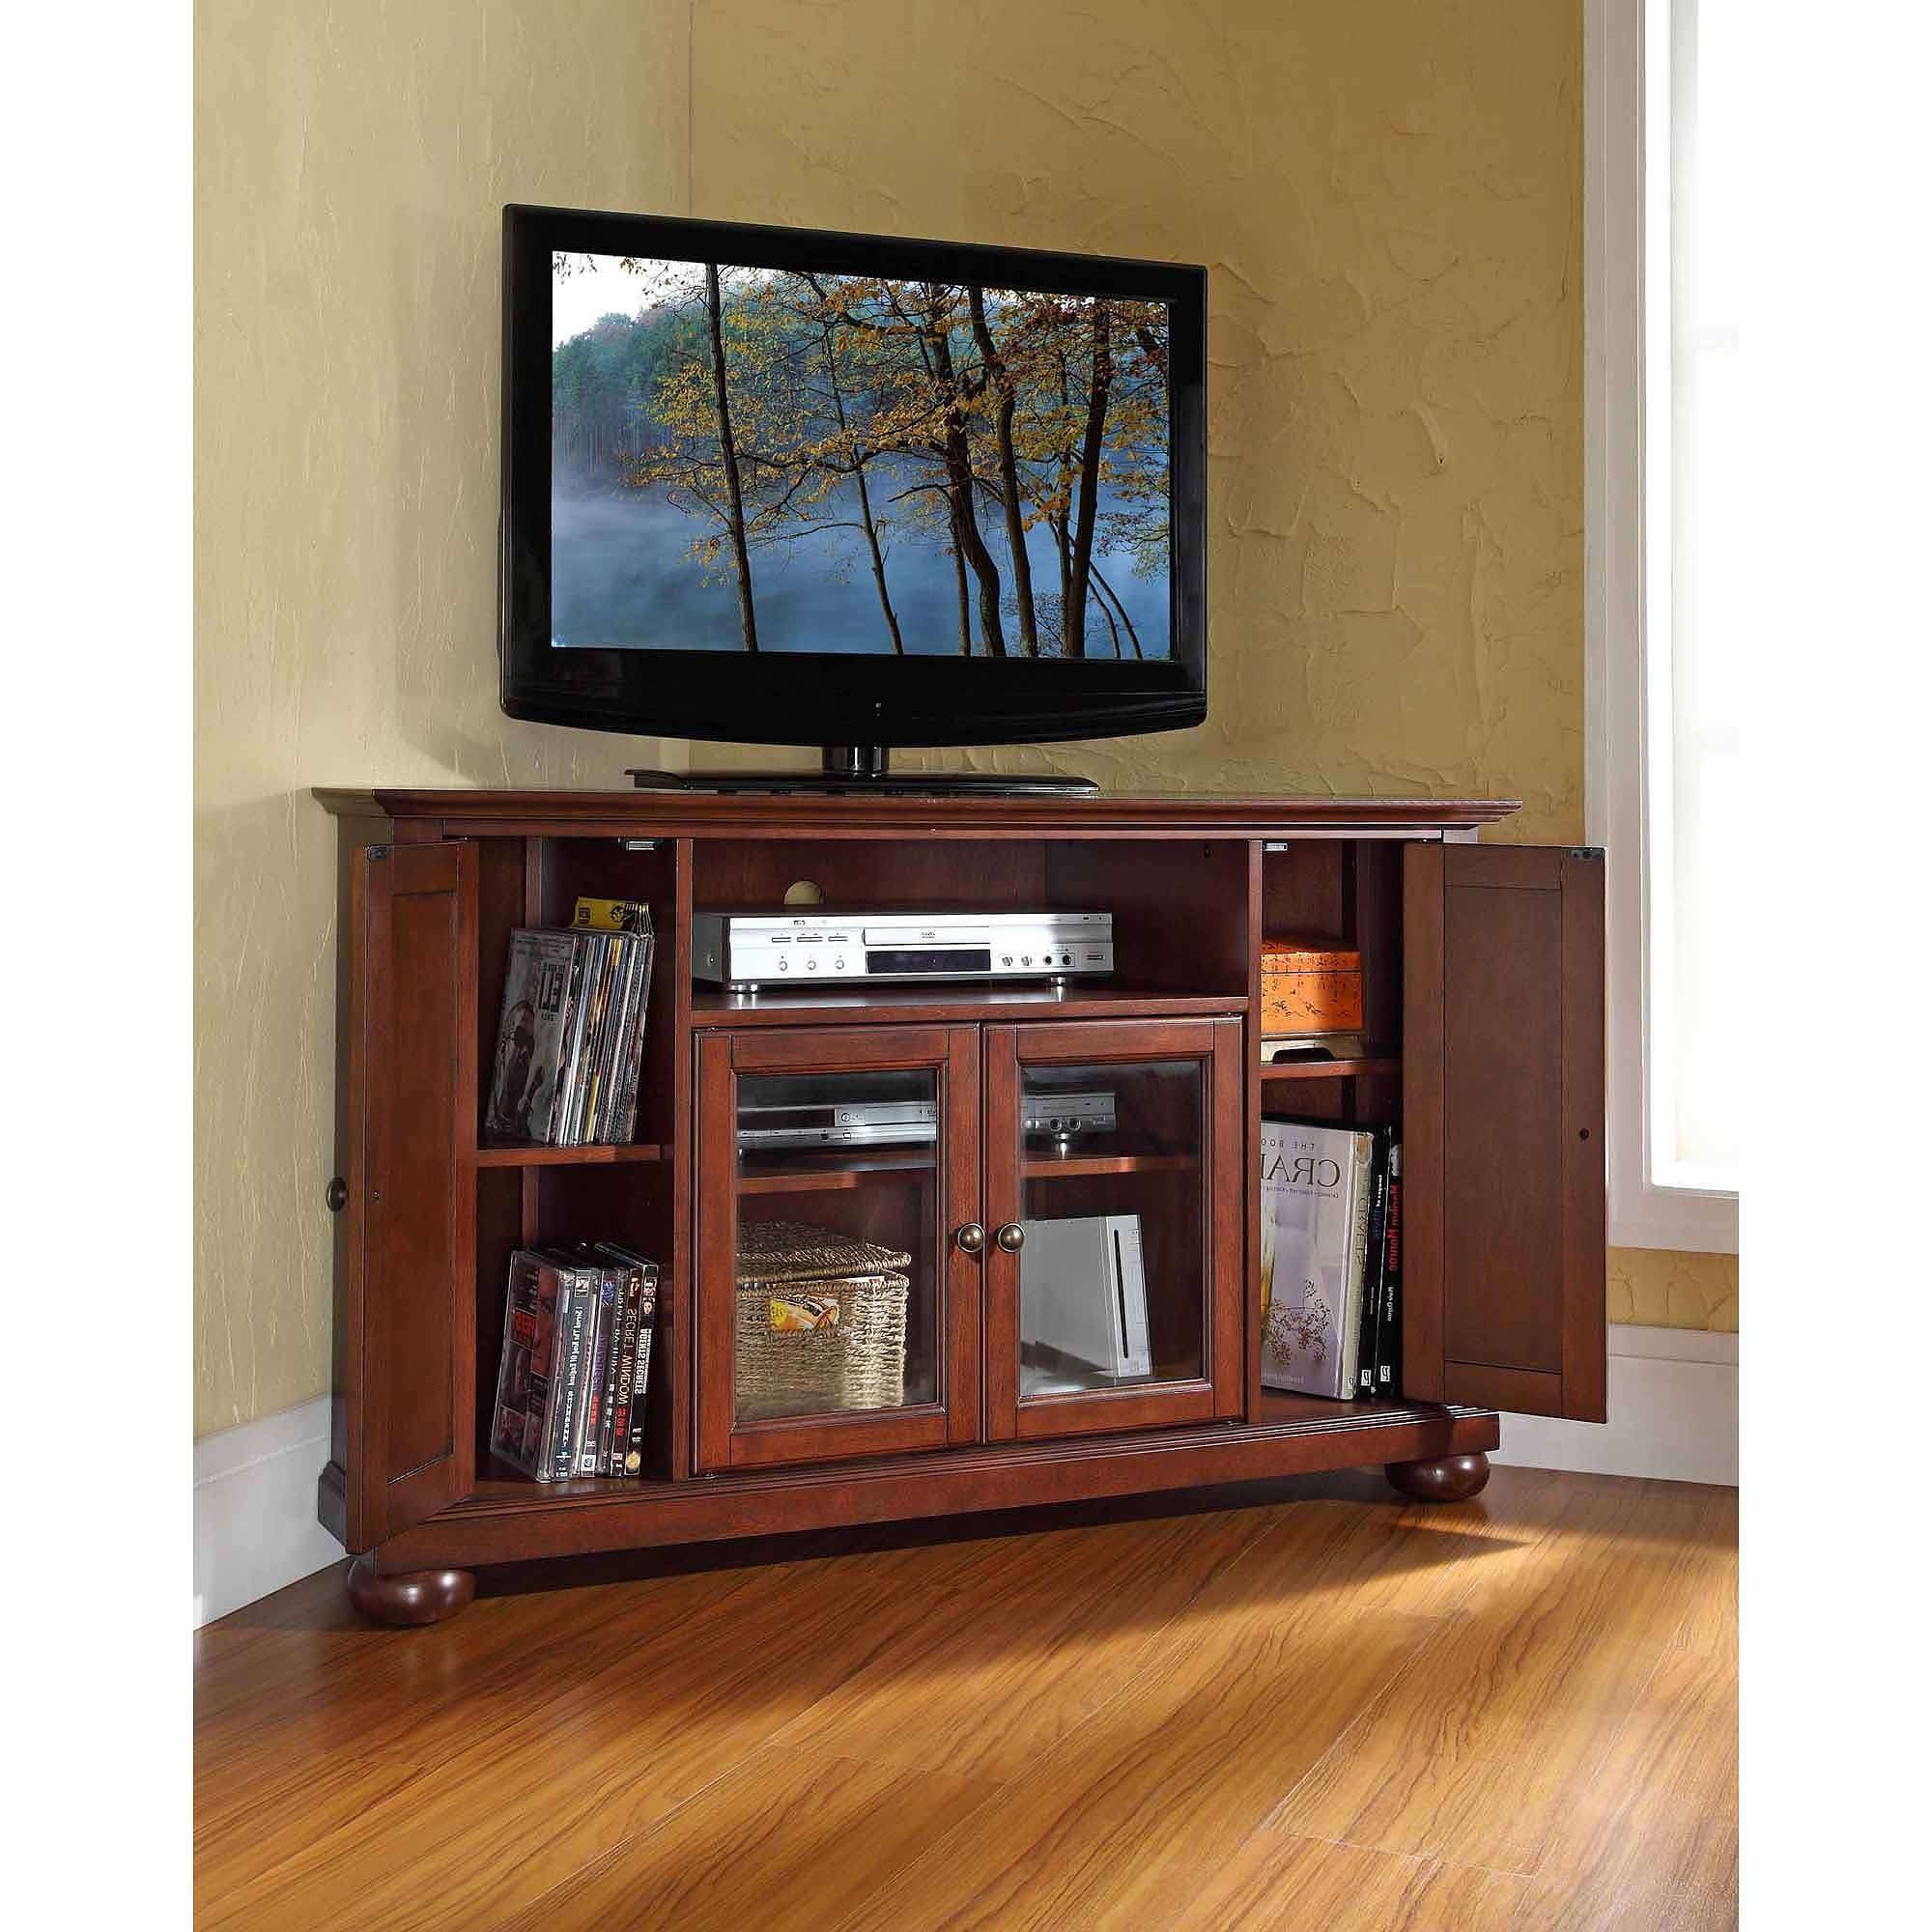 Tv Stand : Stirring Corner Tv Stand Fornch Photo Concept Flat Within 55 Inch Corner Tv Stands (View 19 of 20)